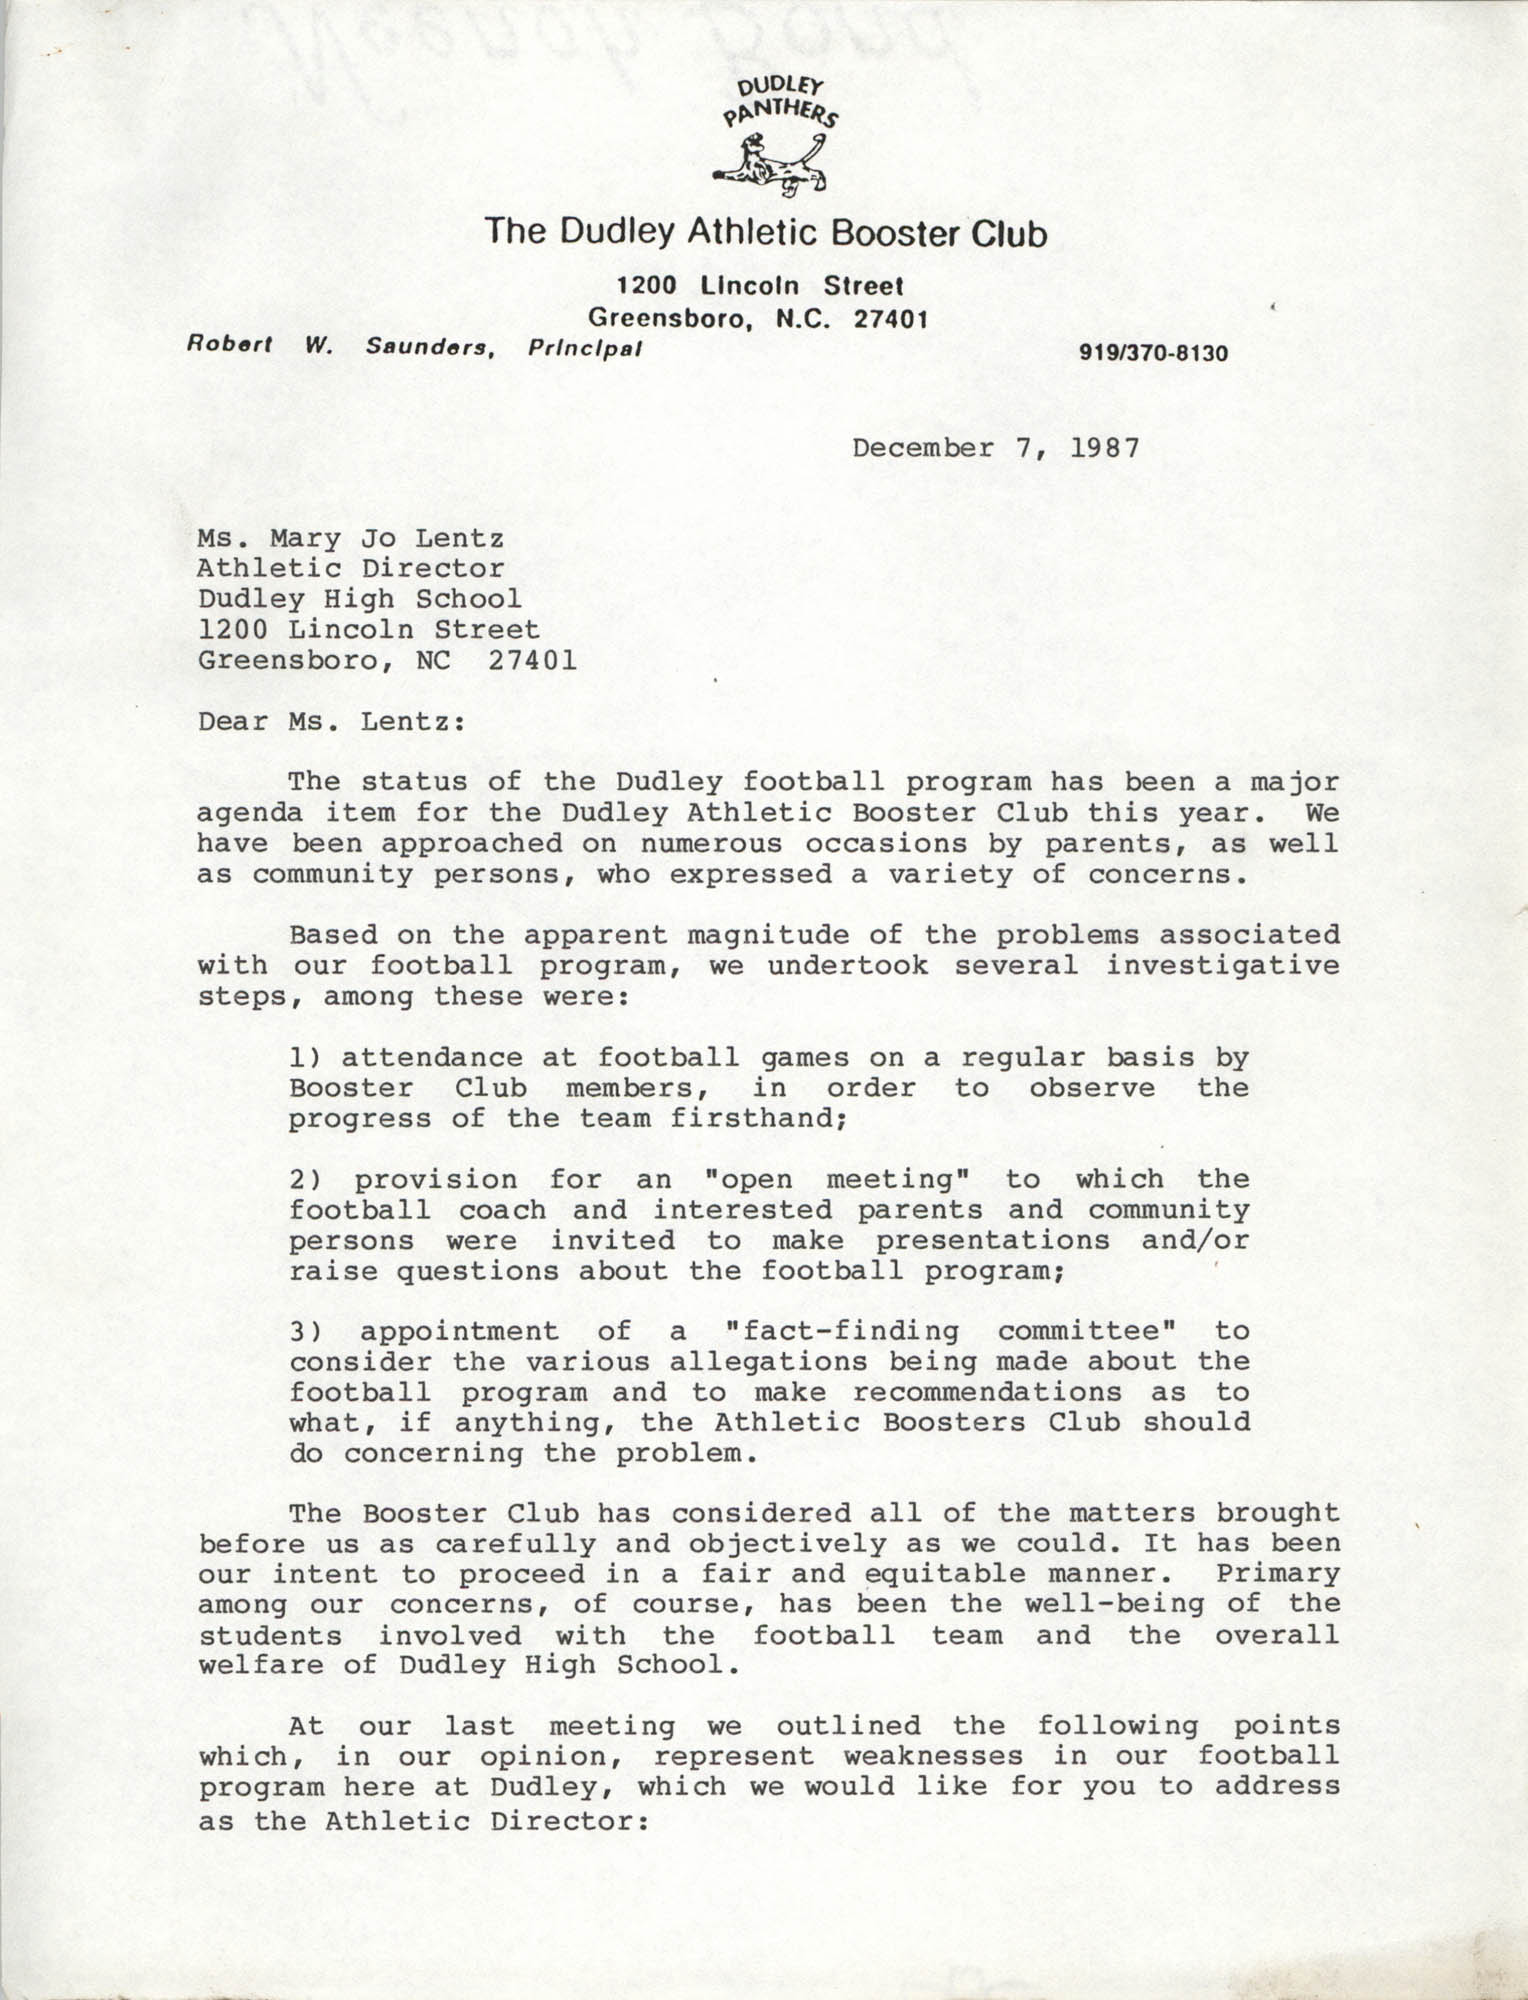 Letter from Cleveland Sellers to Mary Jo Lentz, December 7, 1987